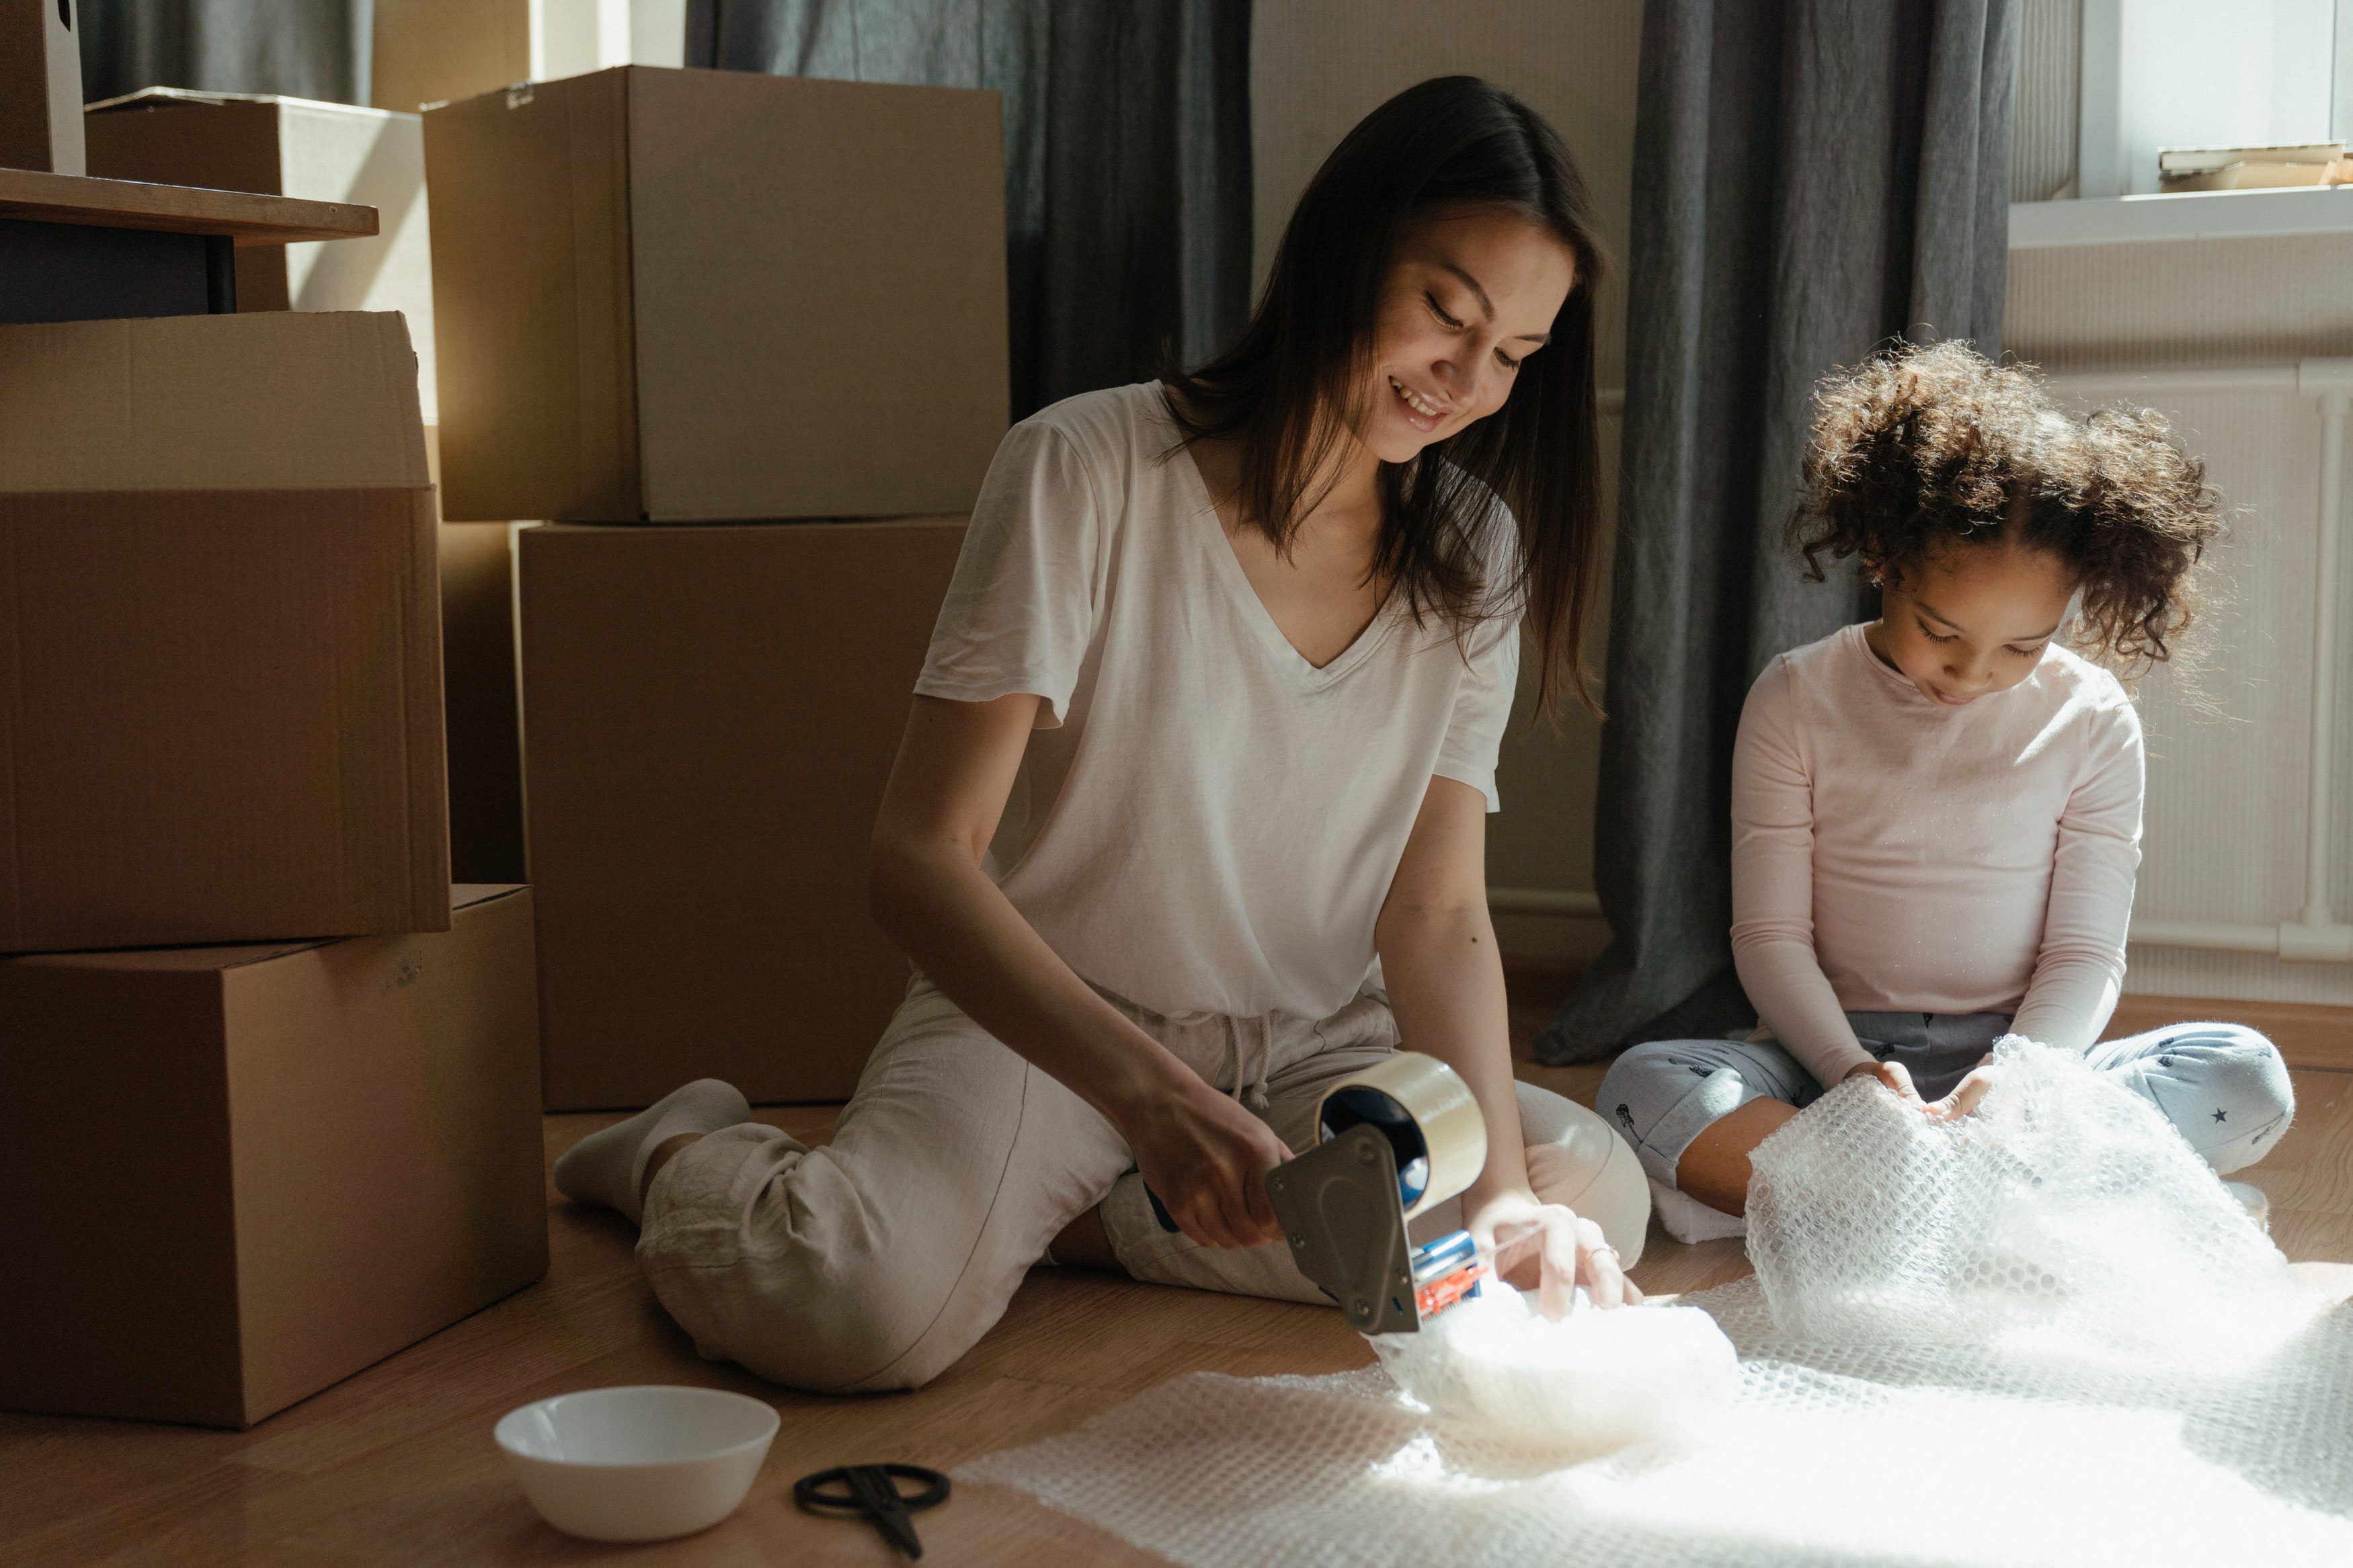 mom and daughter packing